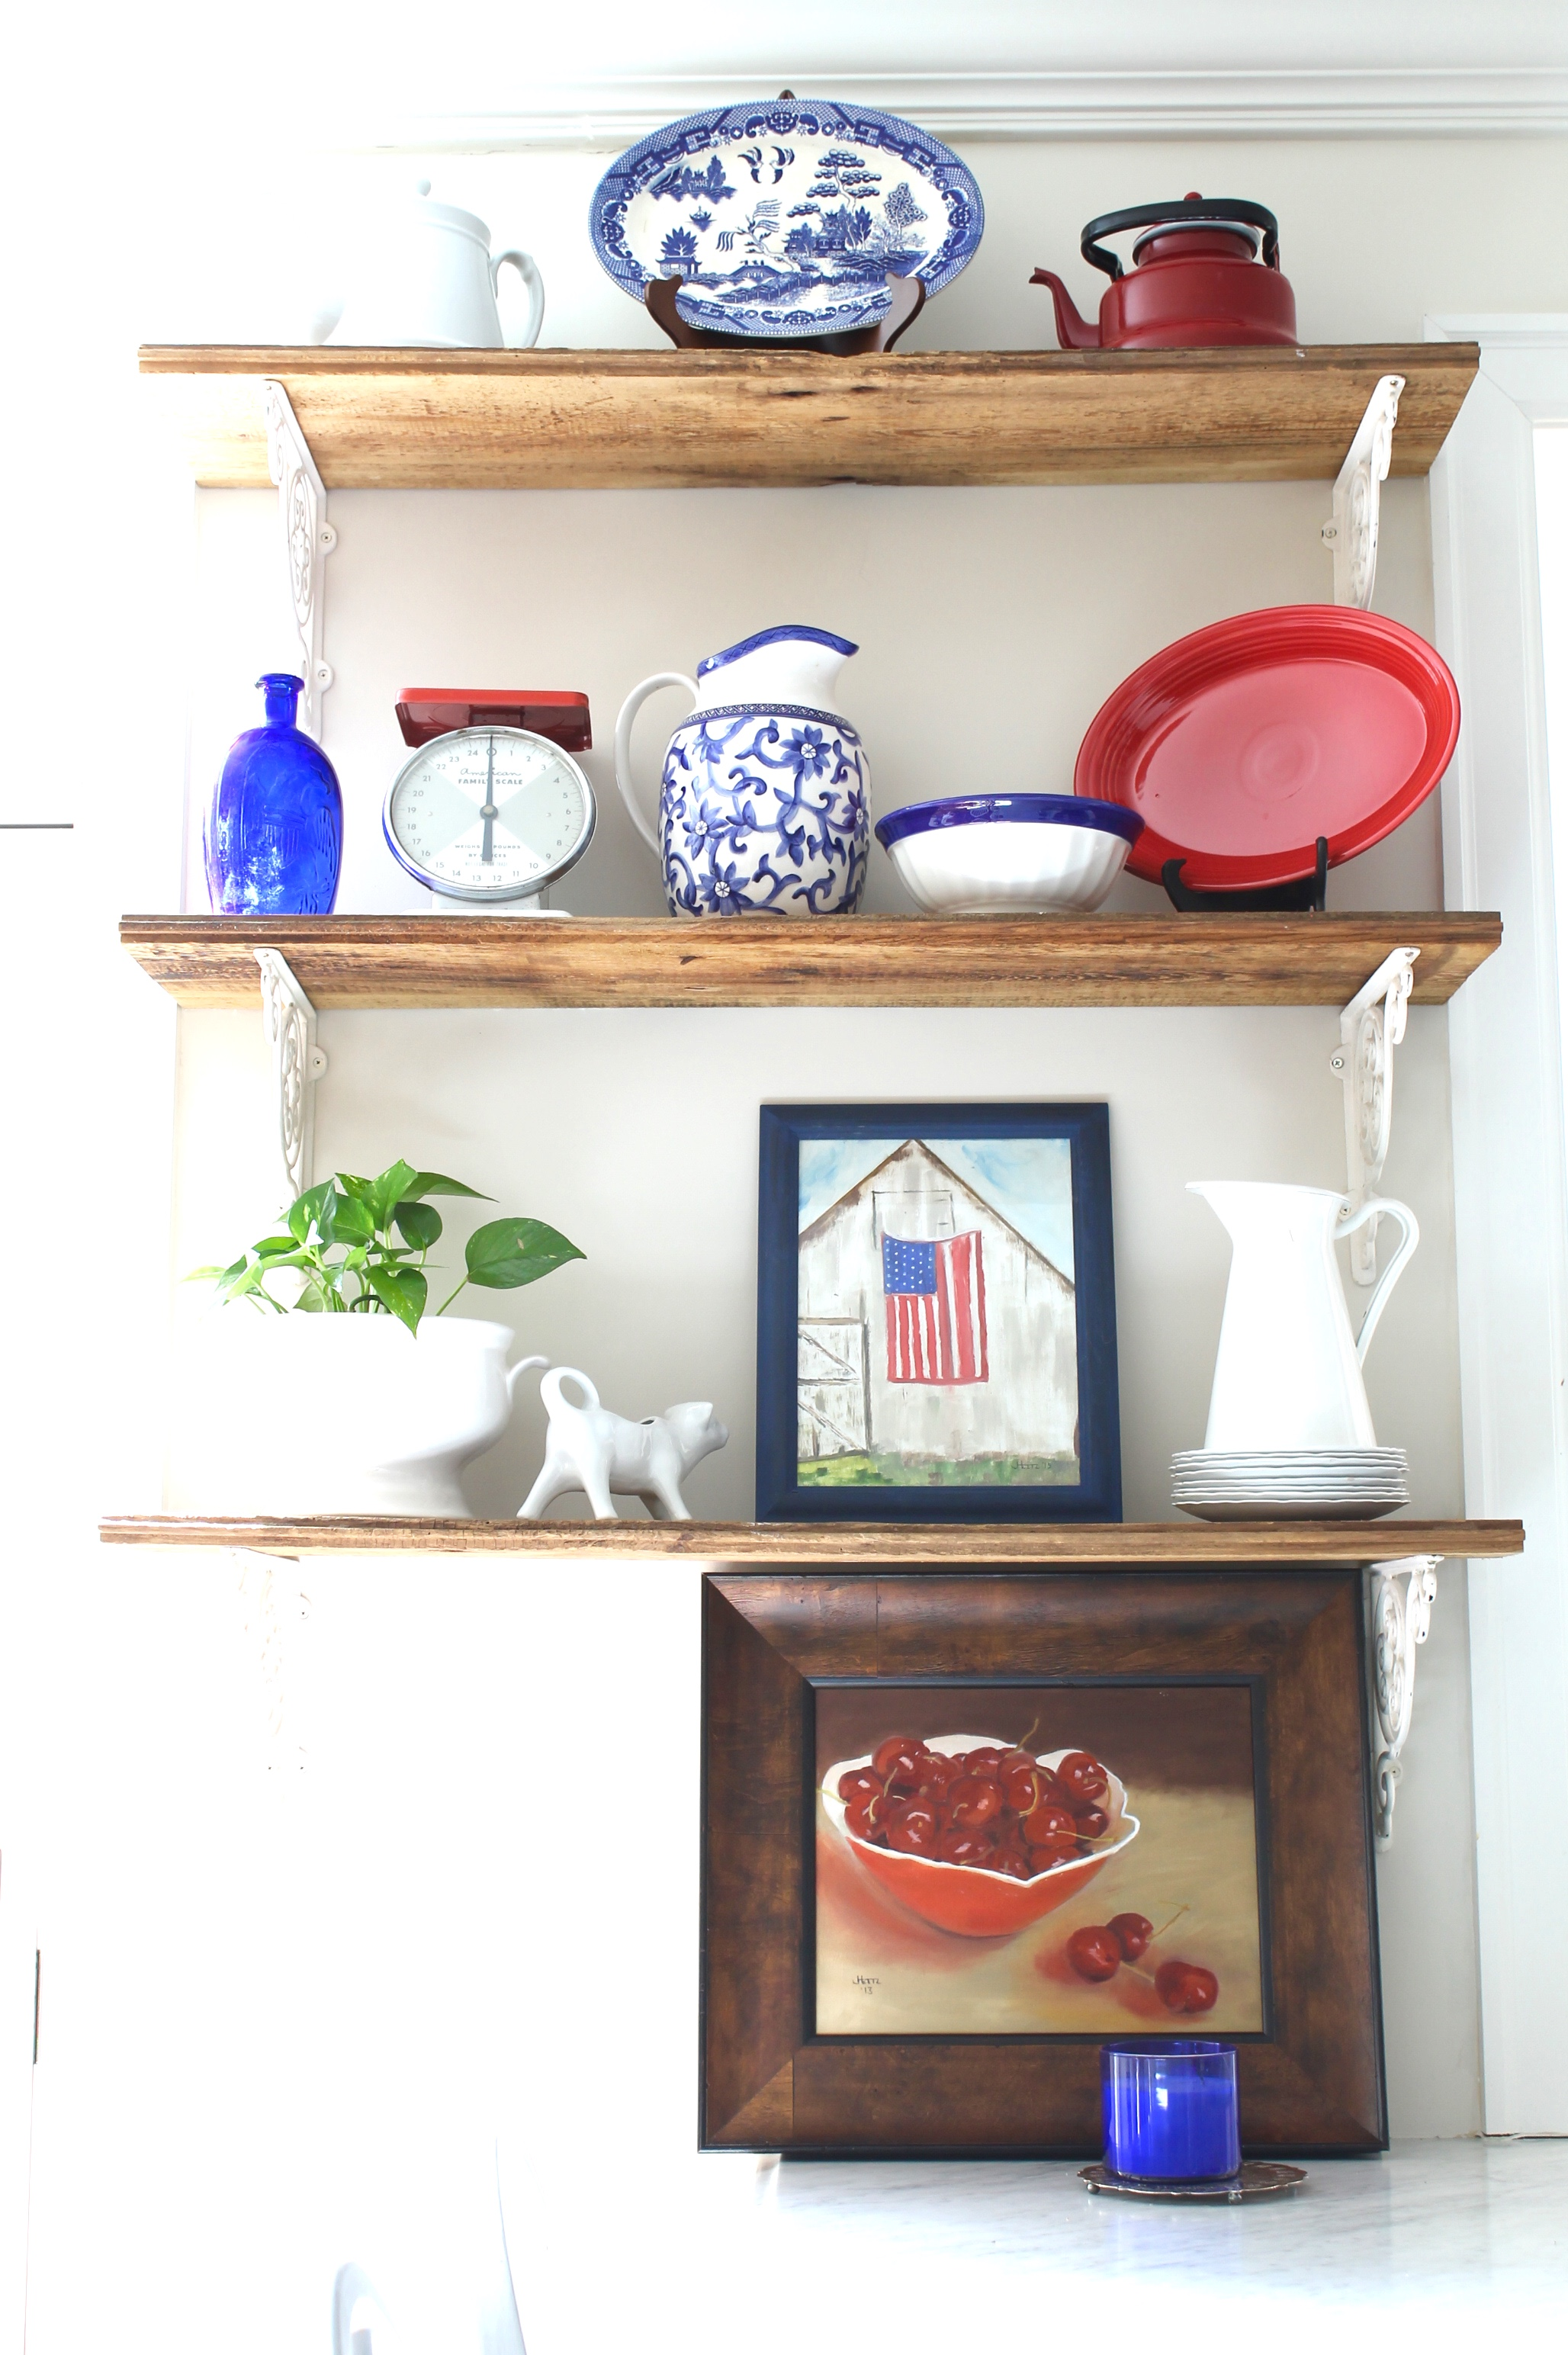 July 4 on rustic kitchen shelves - The 2 Seasons